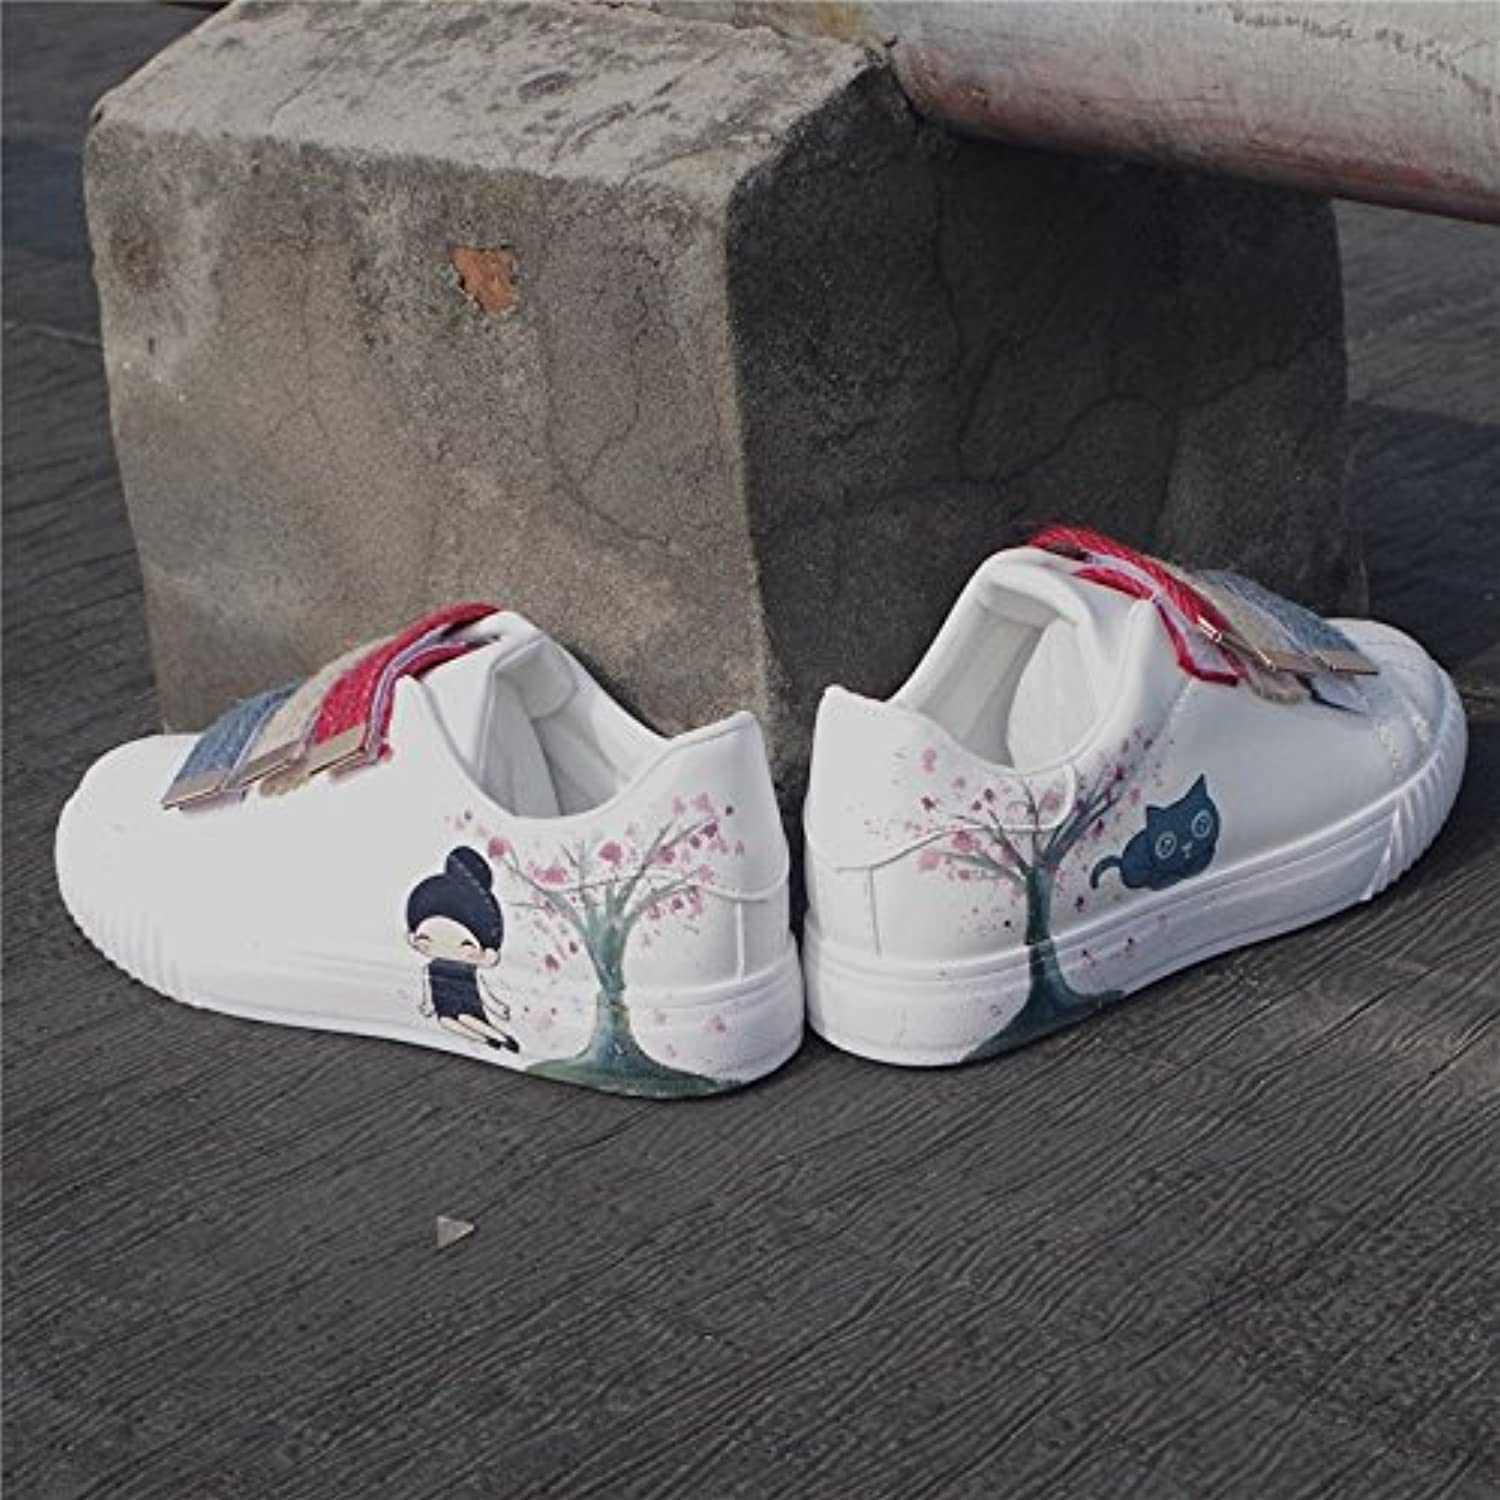 GUNAINDMX  Shoes/Shoes/Shoes/Shoes/All-Match/Spring/Winter/Running Shoes/Painted - - - B07BD6LM3R - 19f904